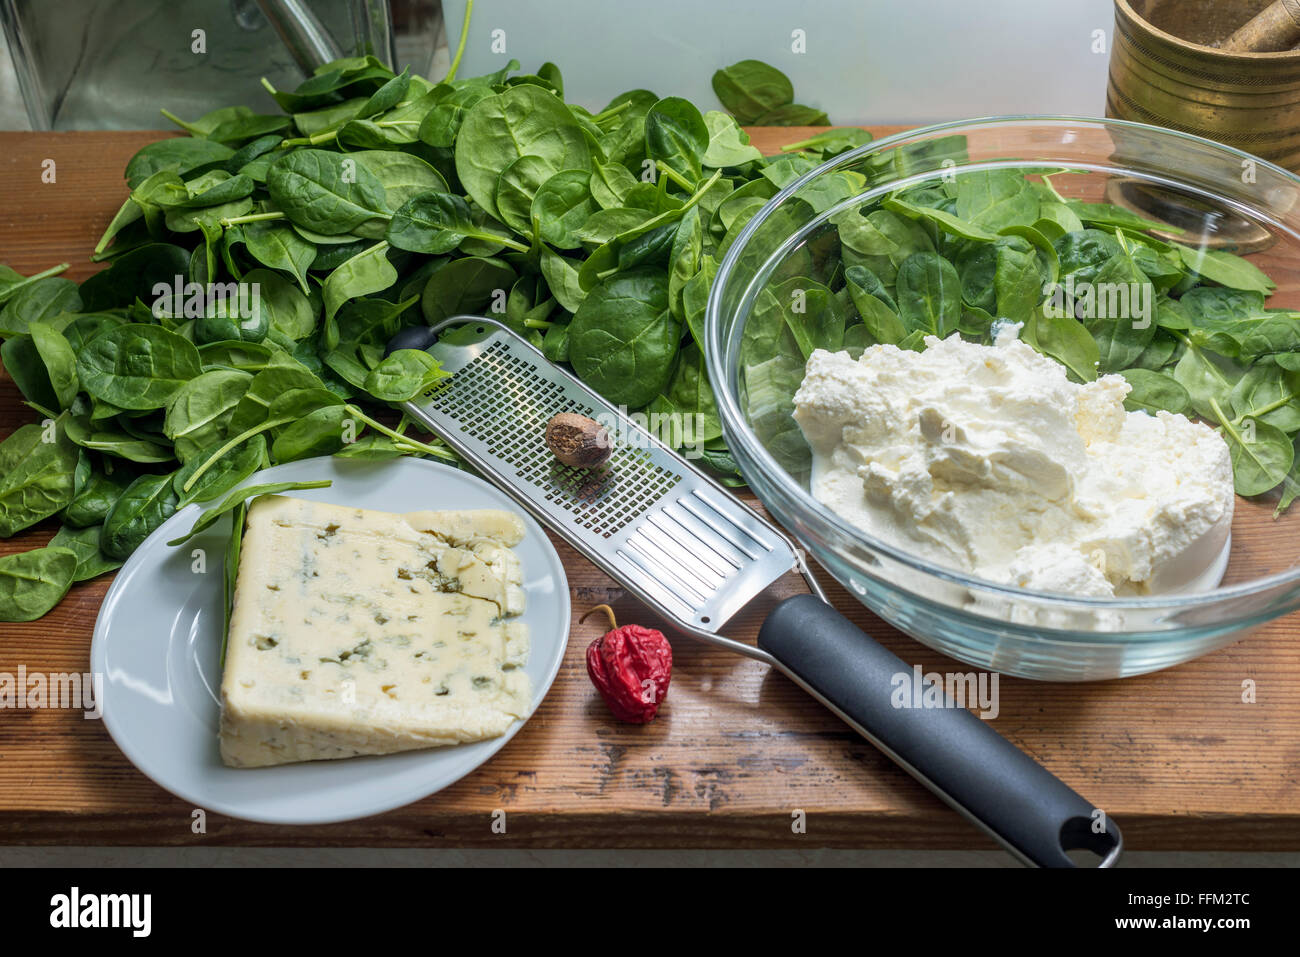 made ravioli pasta by hand Hand Kitchen Spinach Ricotta Cotta dough stamp Ravioli stamp cut out cheese cream cheese - Stock Image